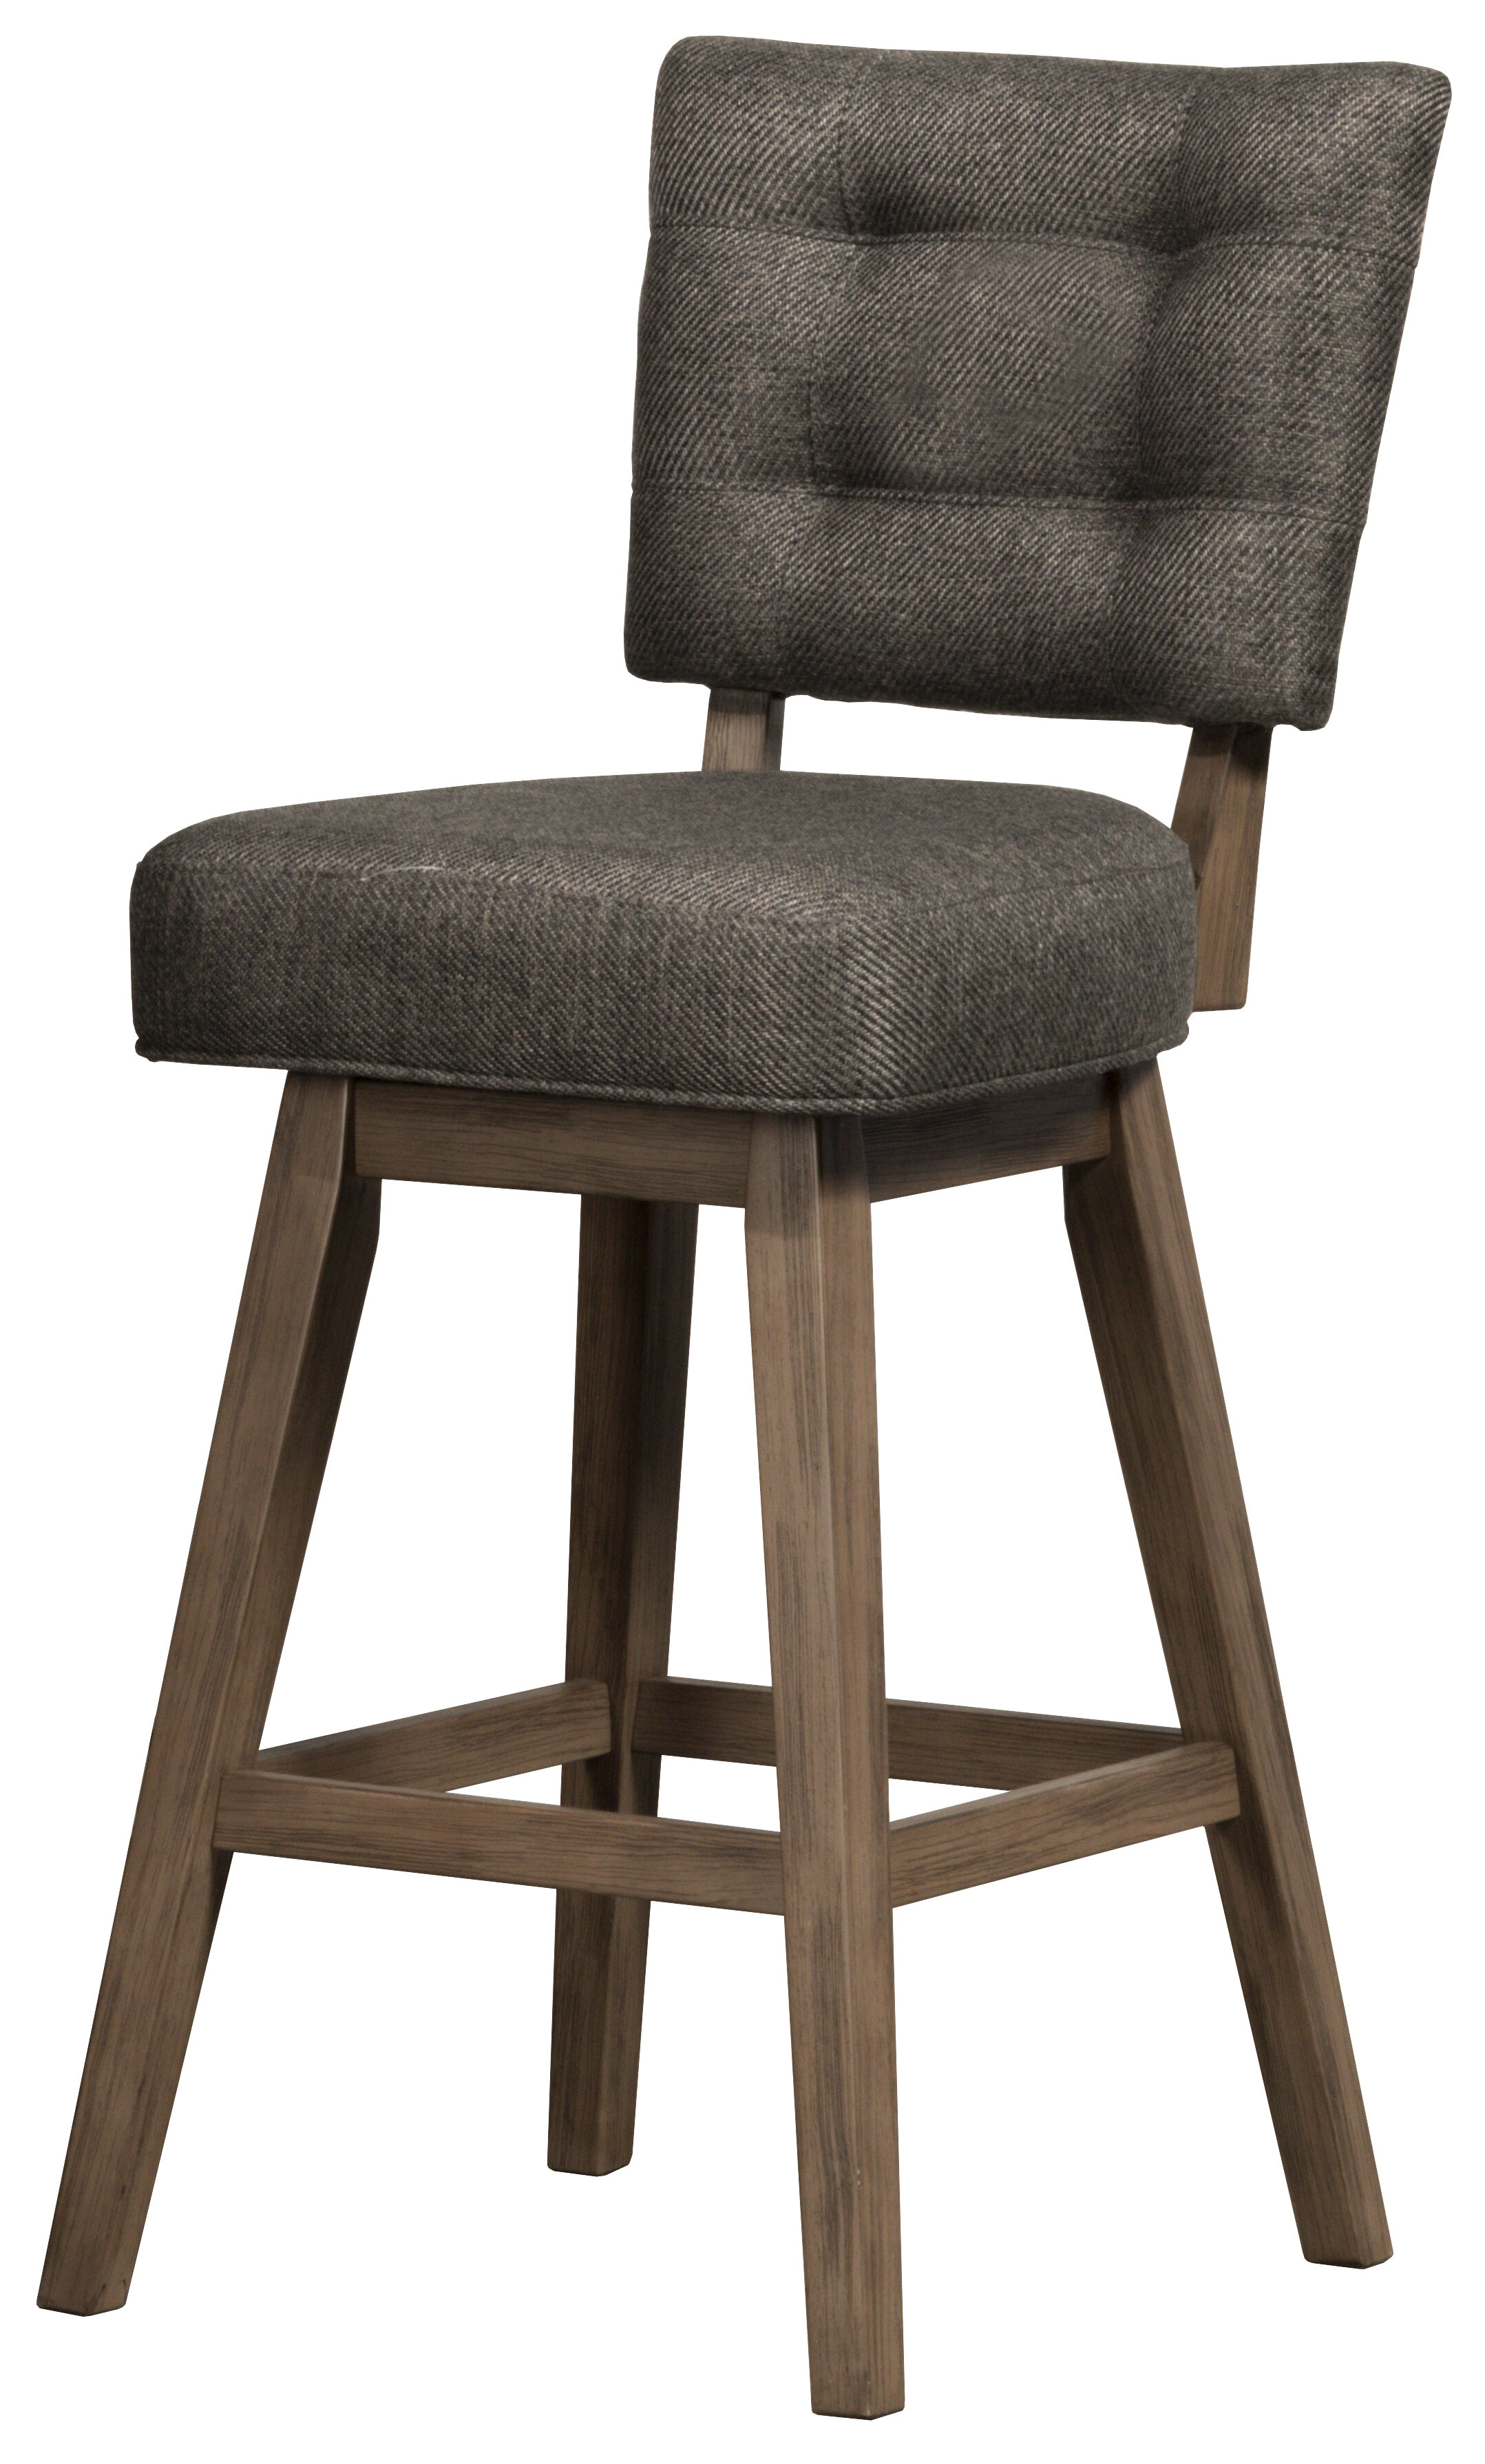 Remarkable Rubinstein Bar Counter Swivel Stool Pabps2019 Chair Design Images Pabps2019Com